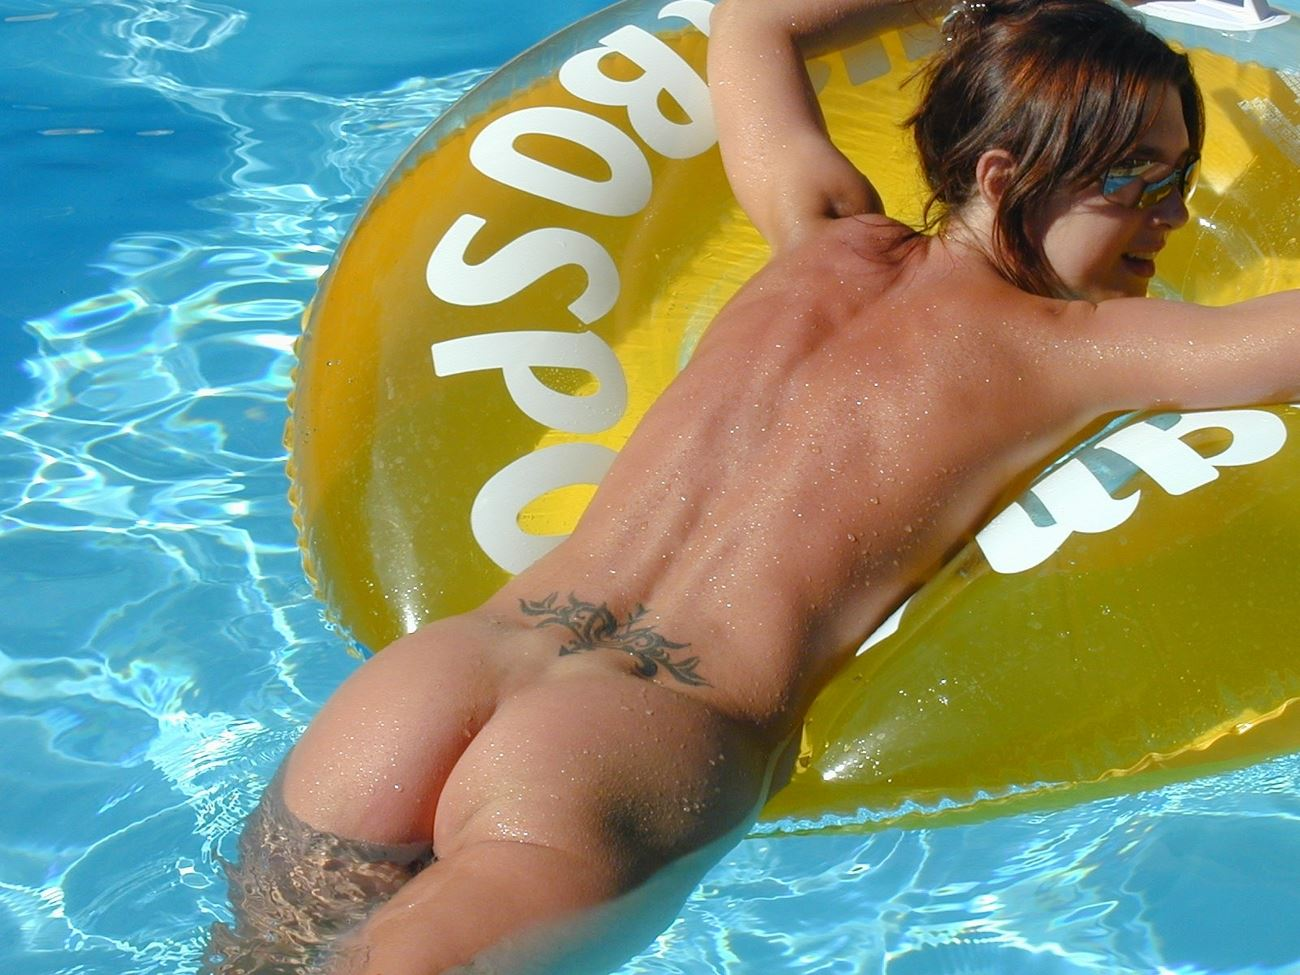 Naked Amateur Teen Skinny Dipping In Swimming Pool  Nude -6260